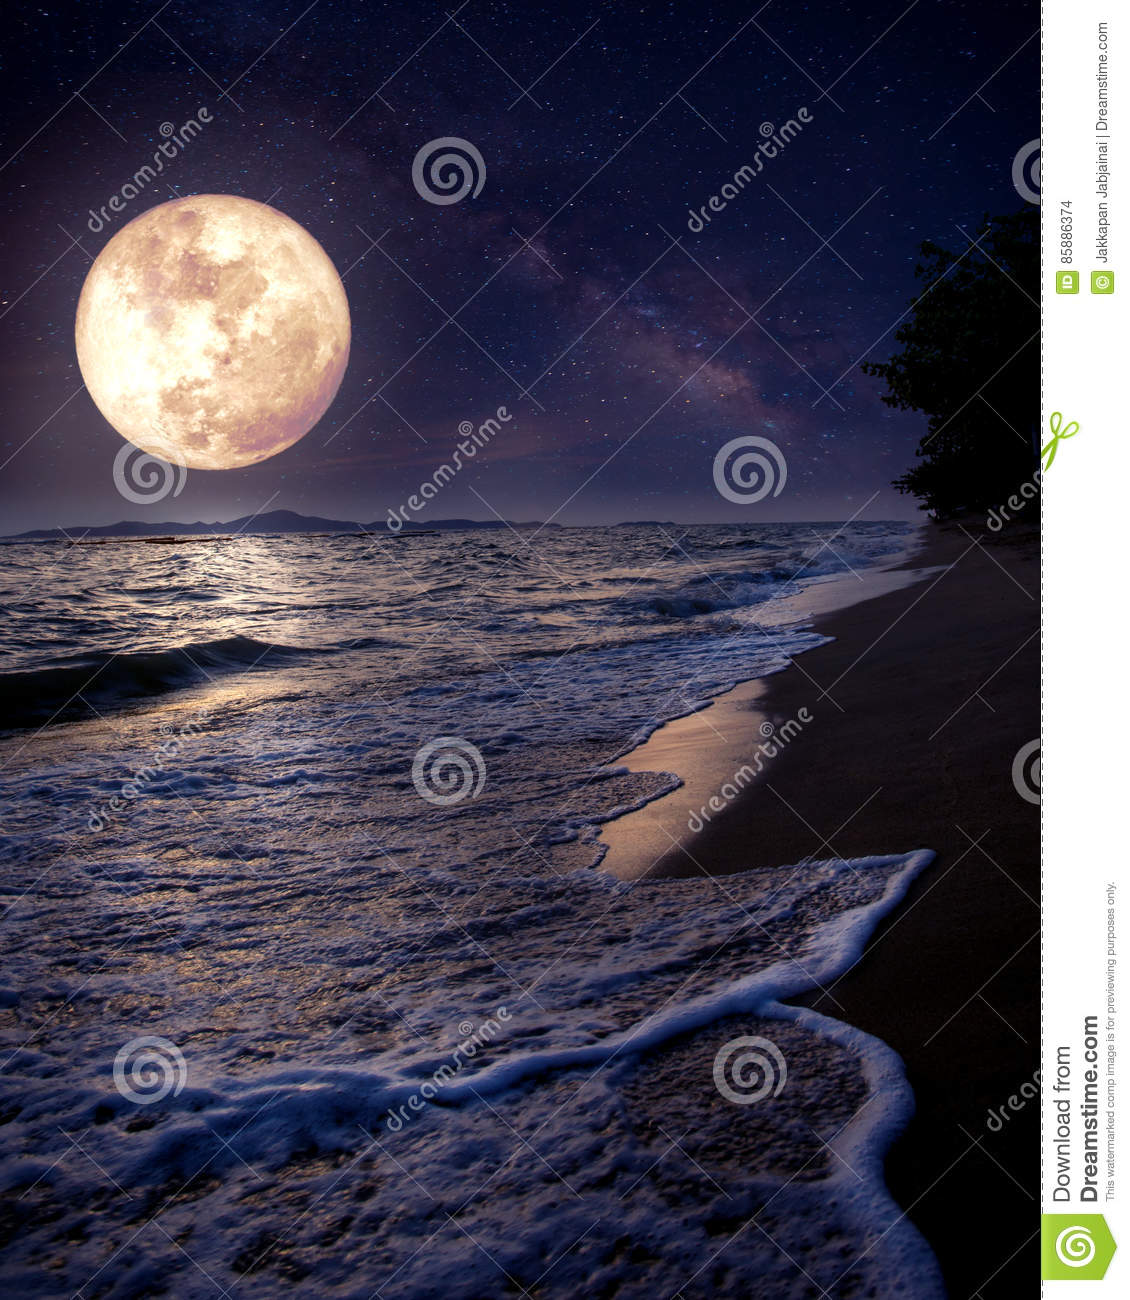 Download Beautiful Fantasy Tropical Beach With Milky Way Star In Night Skies Full Moon Stock